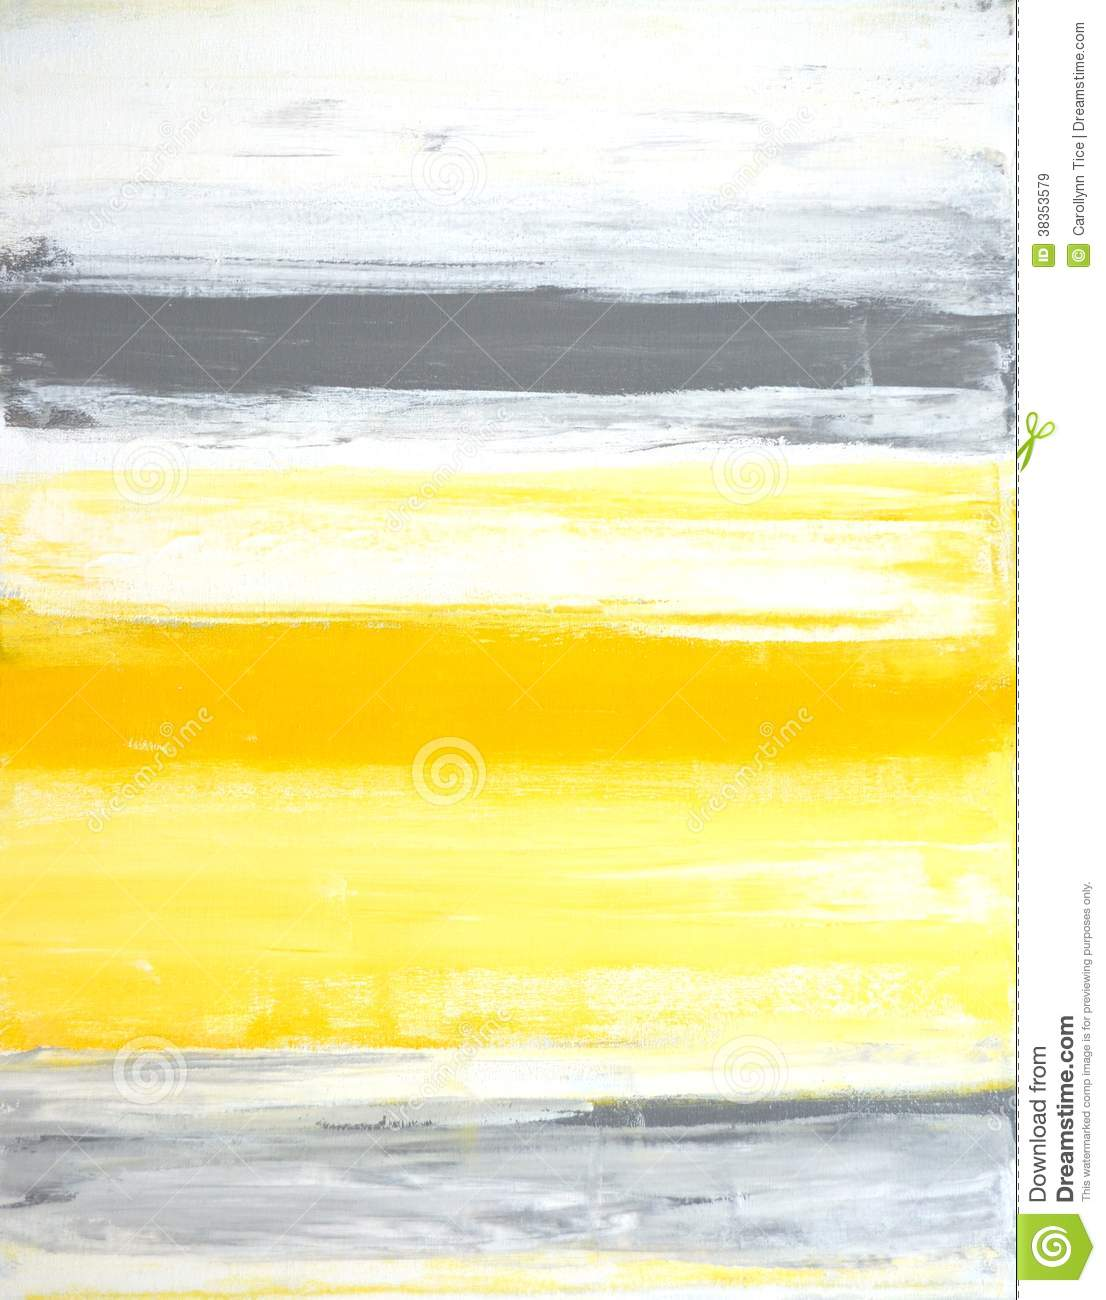 Grey And Yellow Abstract Art Painting Stock Image - Image ...Yellow Abstract Painting